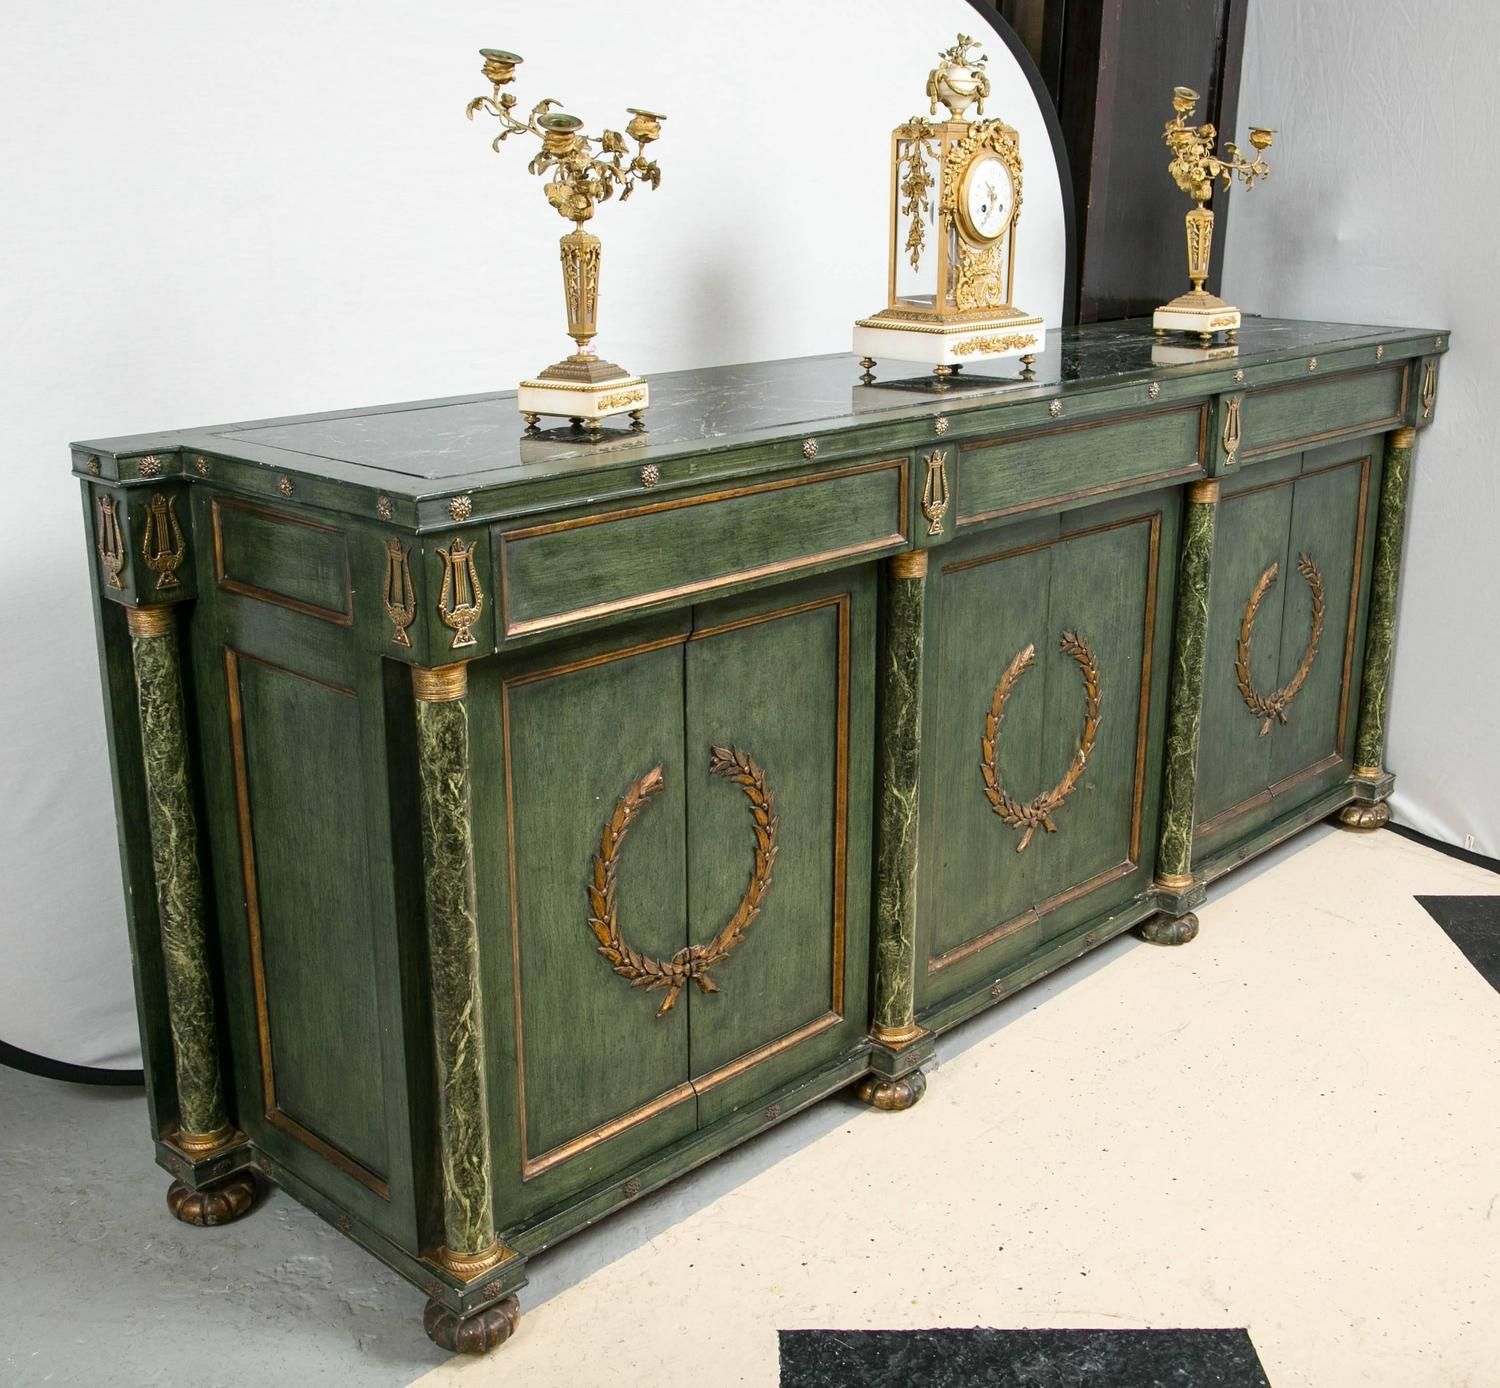 Monumental Italian Neoclassical Style Paint Decorated Marble-Top Console | From a unique collection of antique and modern buffets at https://www.1stdibs.com/furniture/storage-case-pieces/buffets/